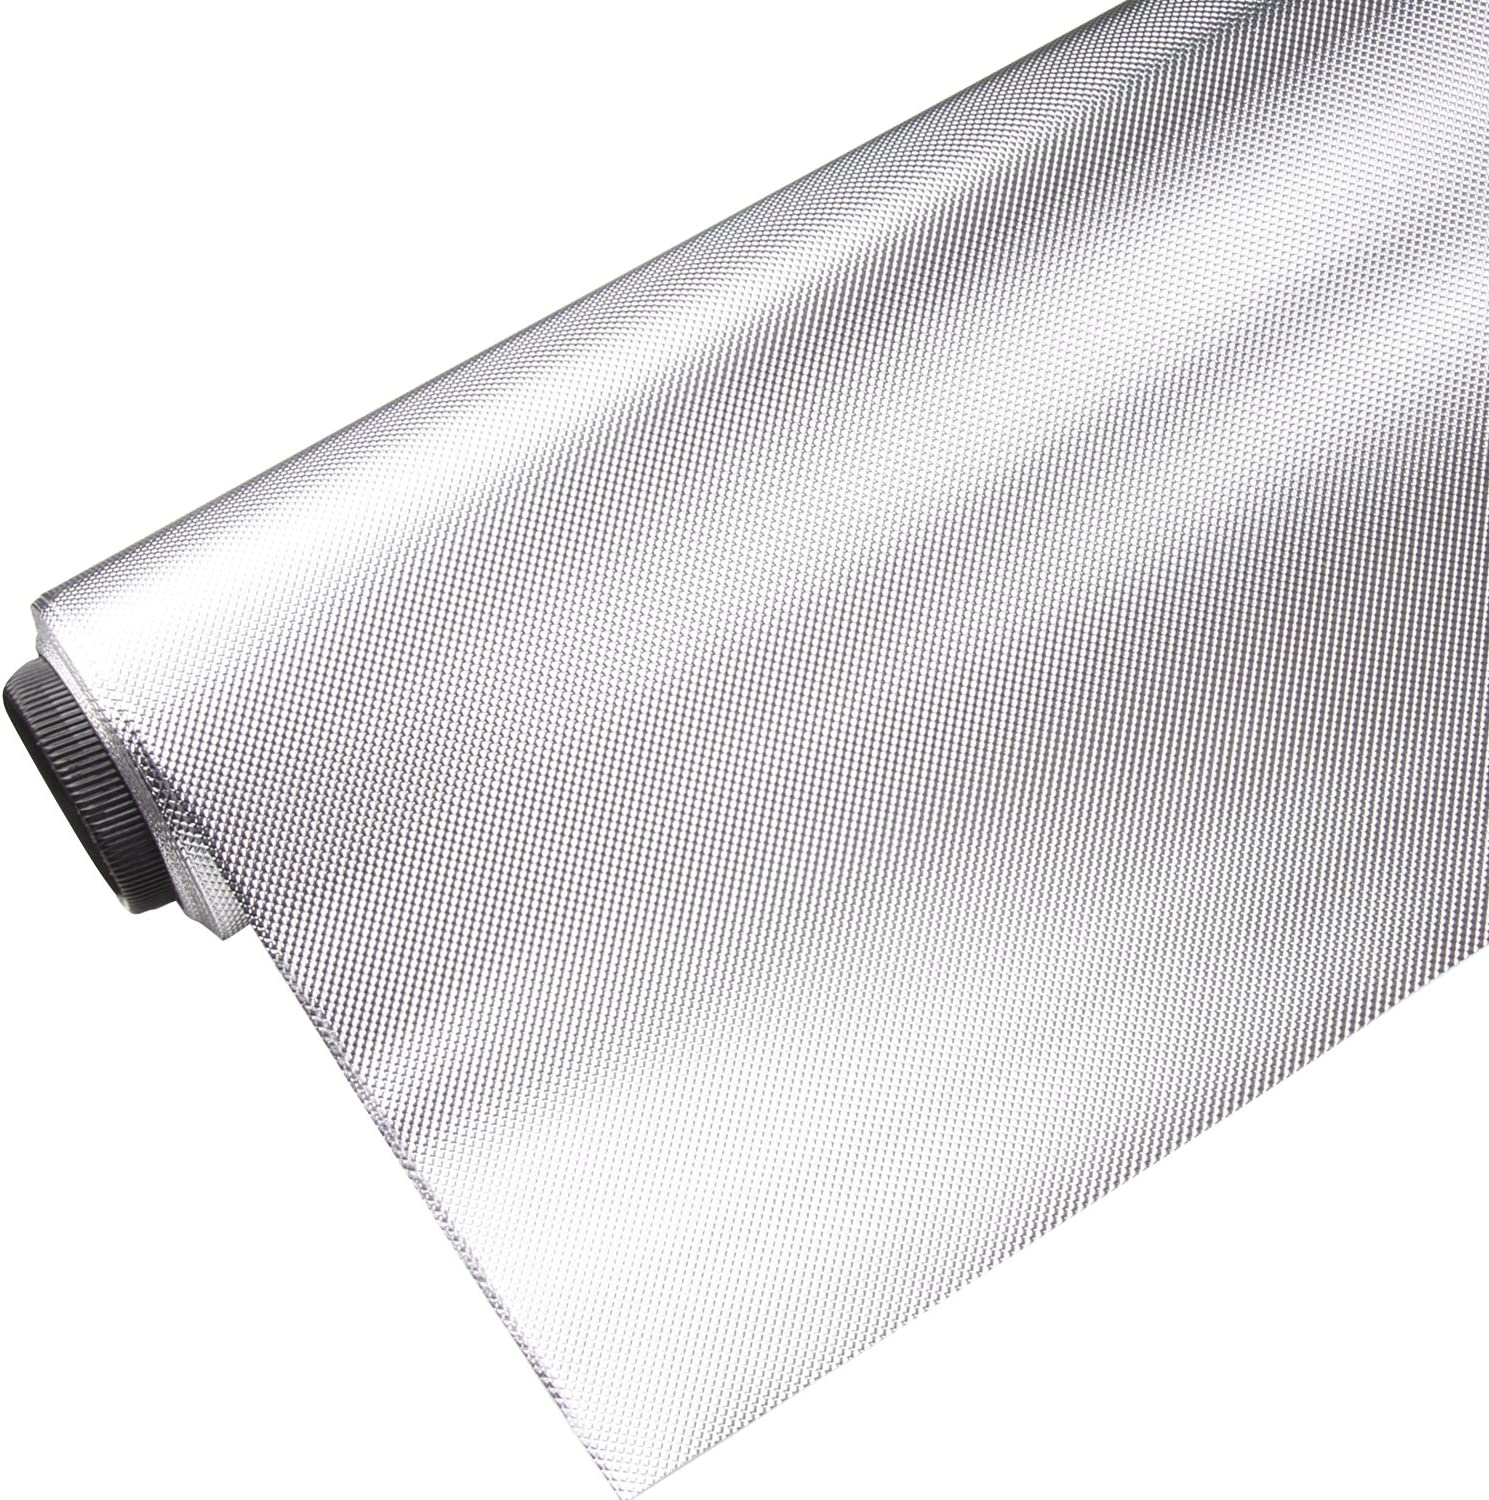 Cngstar Indoor Grow Silver Reflective Mylar Sheeting Garden Greenhouse Covering Foil Sheets Effectively Increase Plants Growth